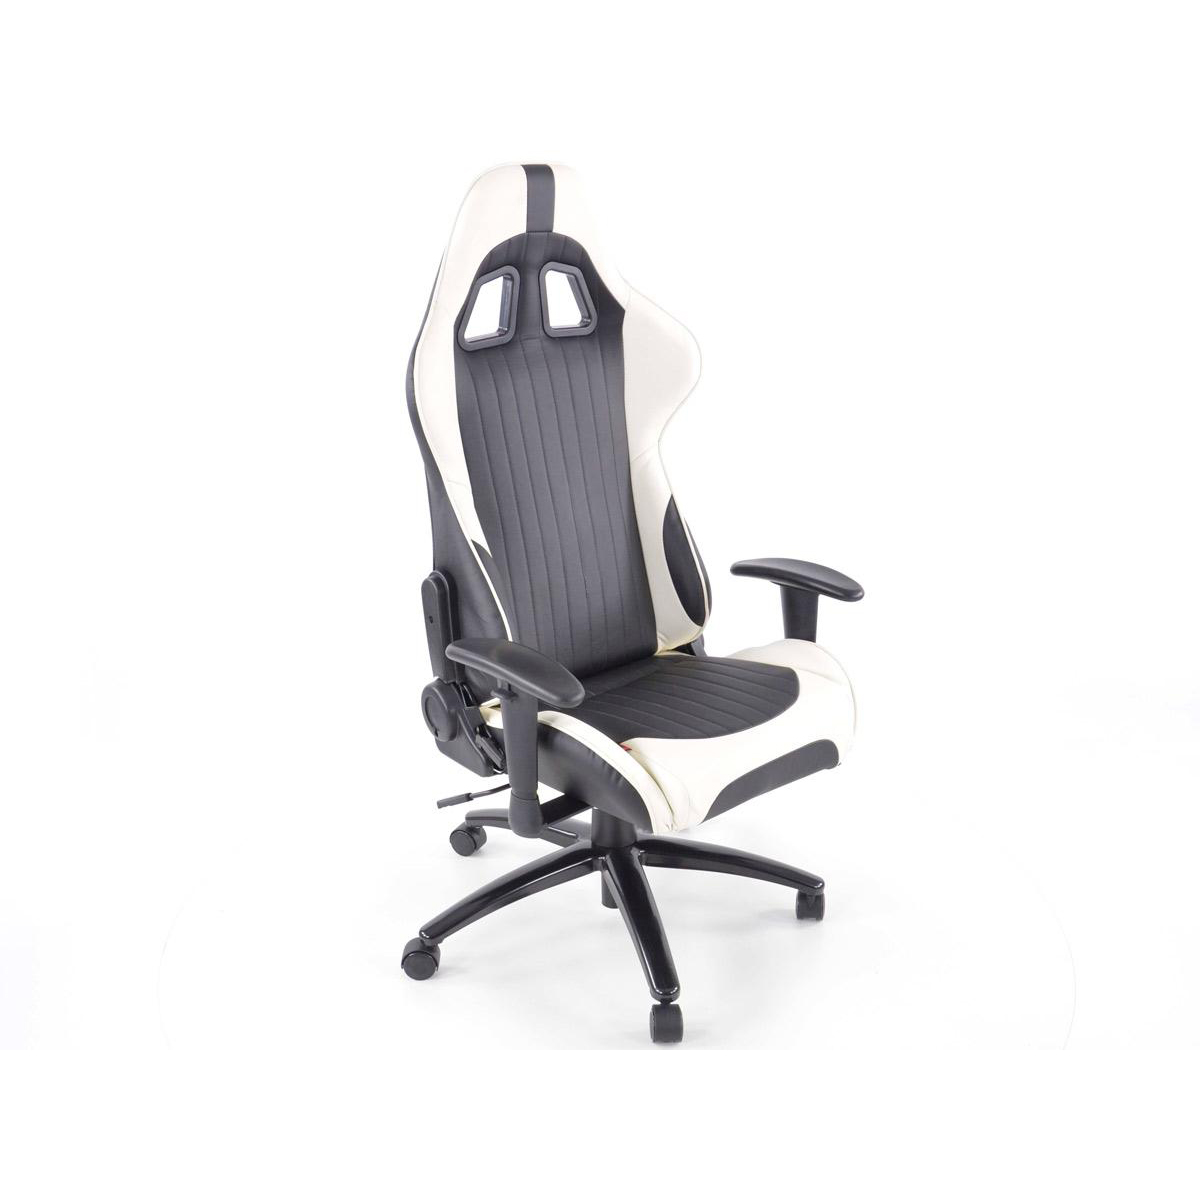 FK Automotive Racecar Executive Black White Racing Office Chair GSM Sport S